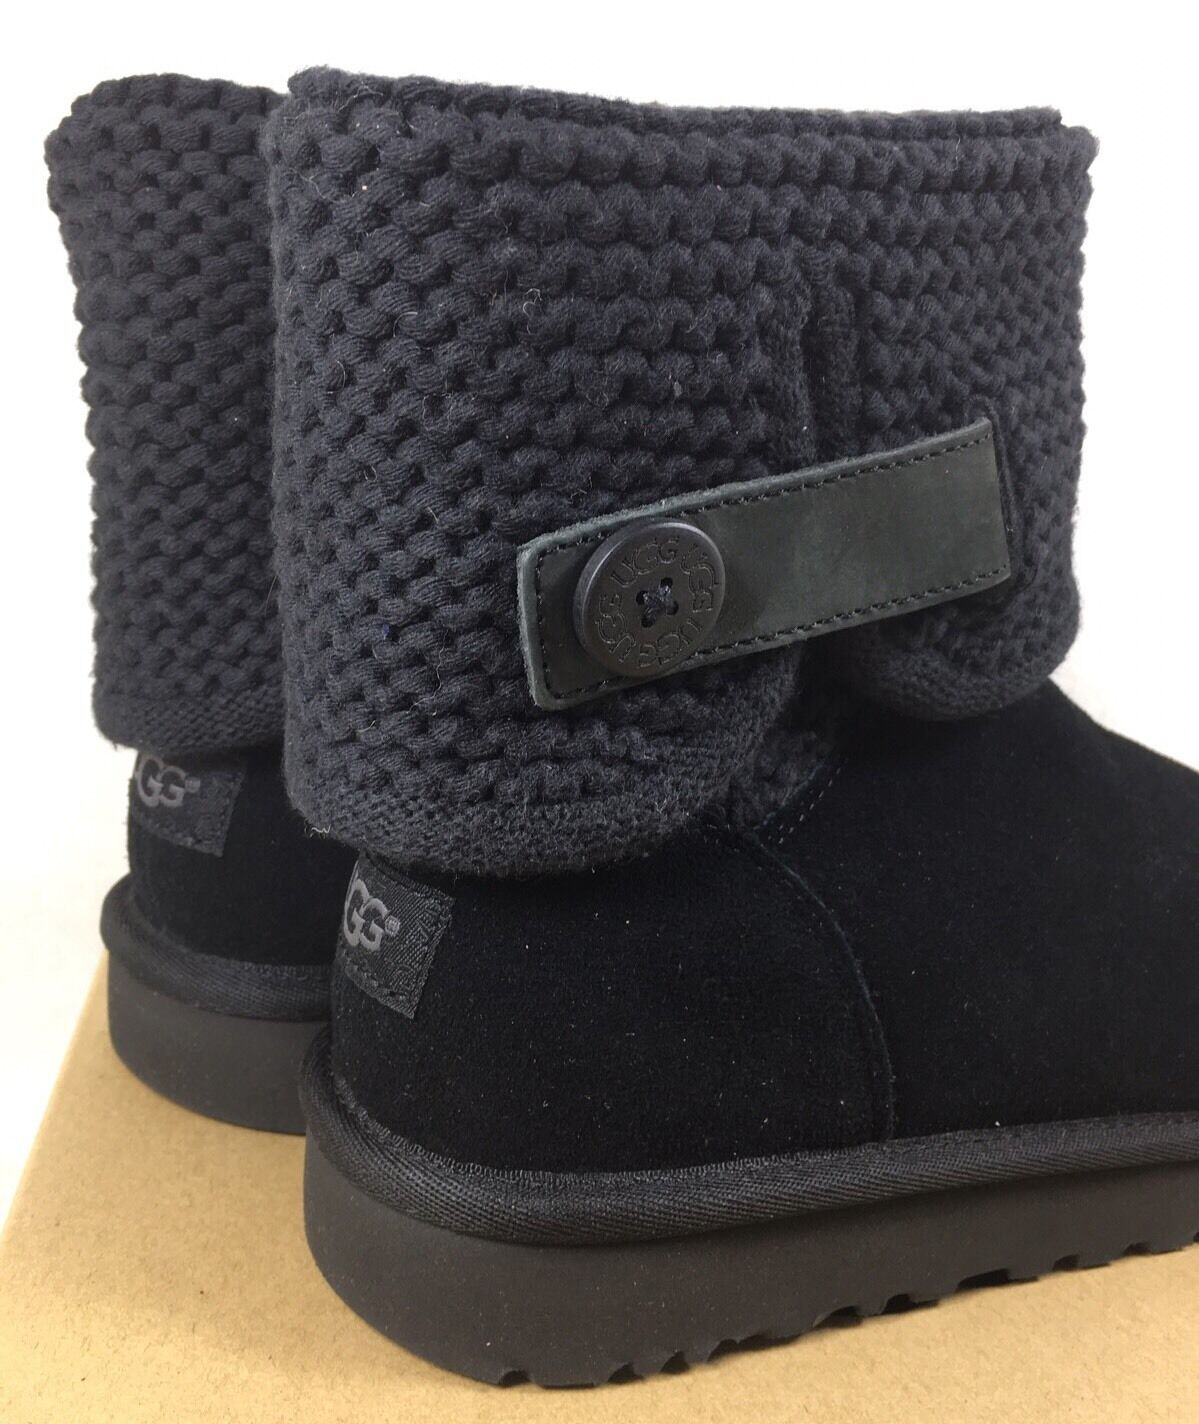 13fd0a77fb8 UGG Australia Women's Shaina Black Knit Boots NEW 1012534 Cuff Ankle Bootie